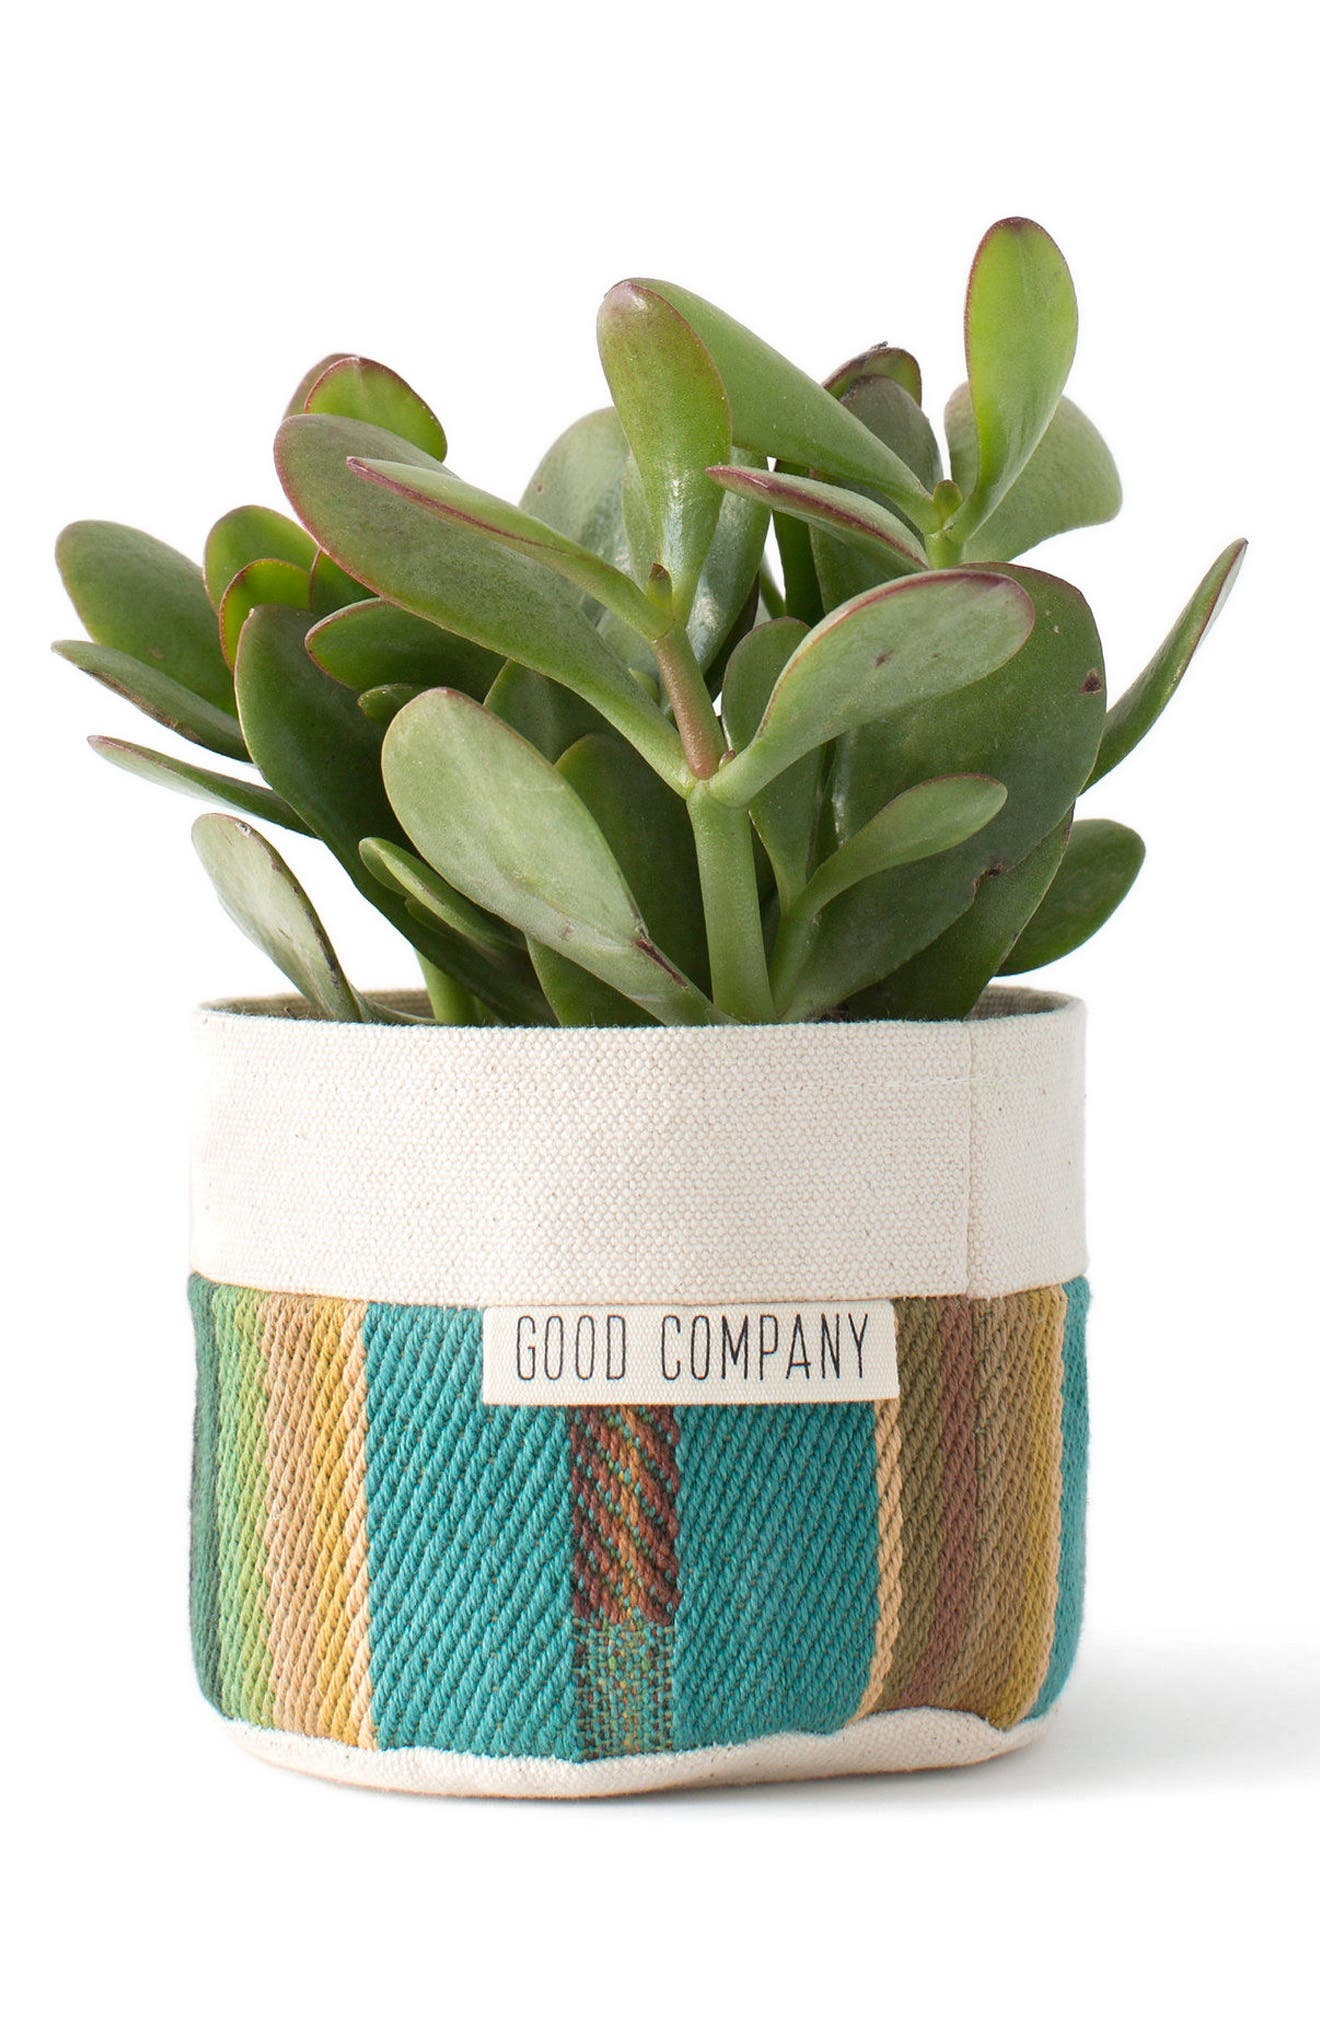 4-Inch Striped Canvas Planter,                             Alternate thumbnail 2, color,                             Tur/ Red